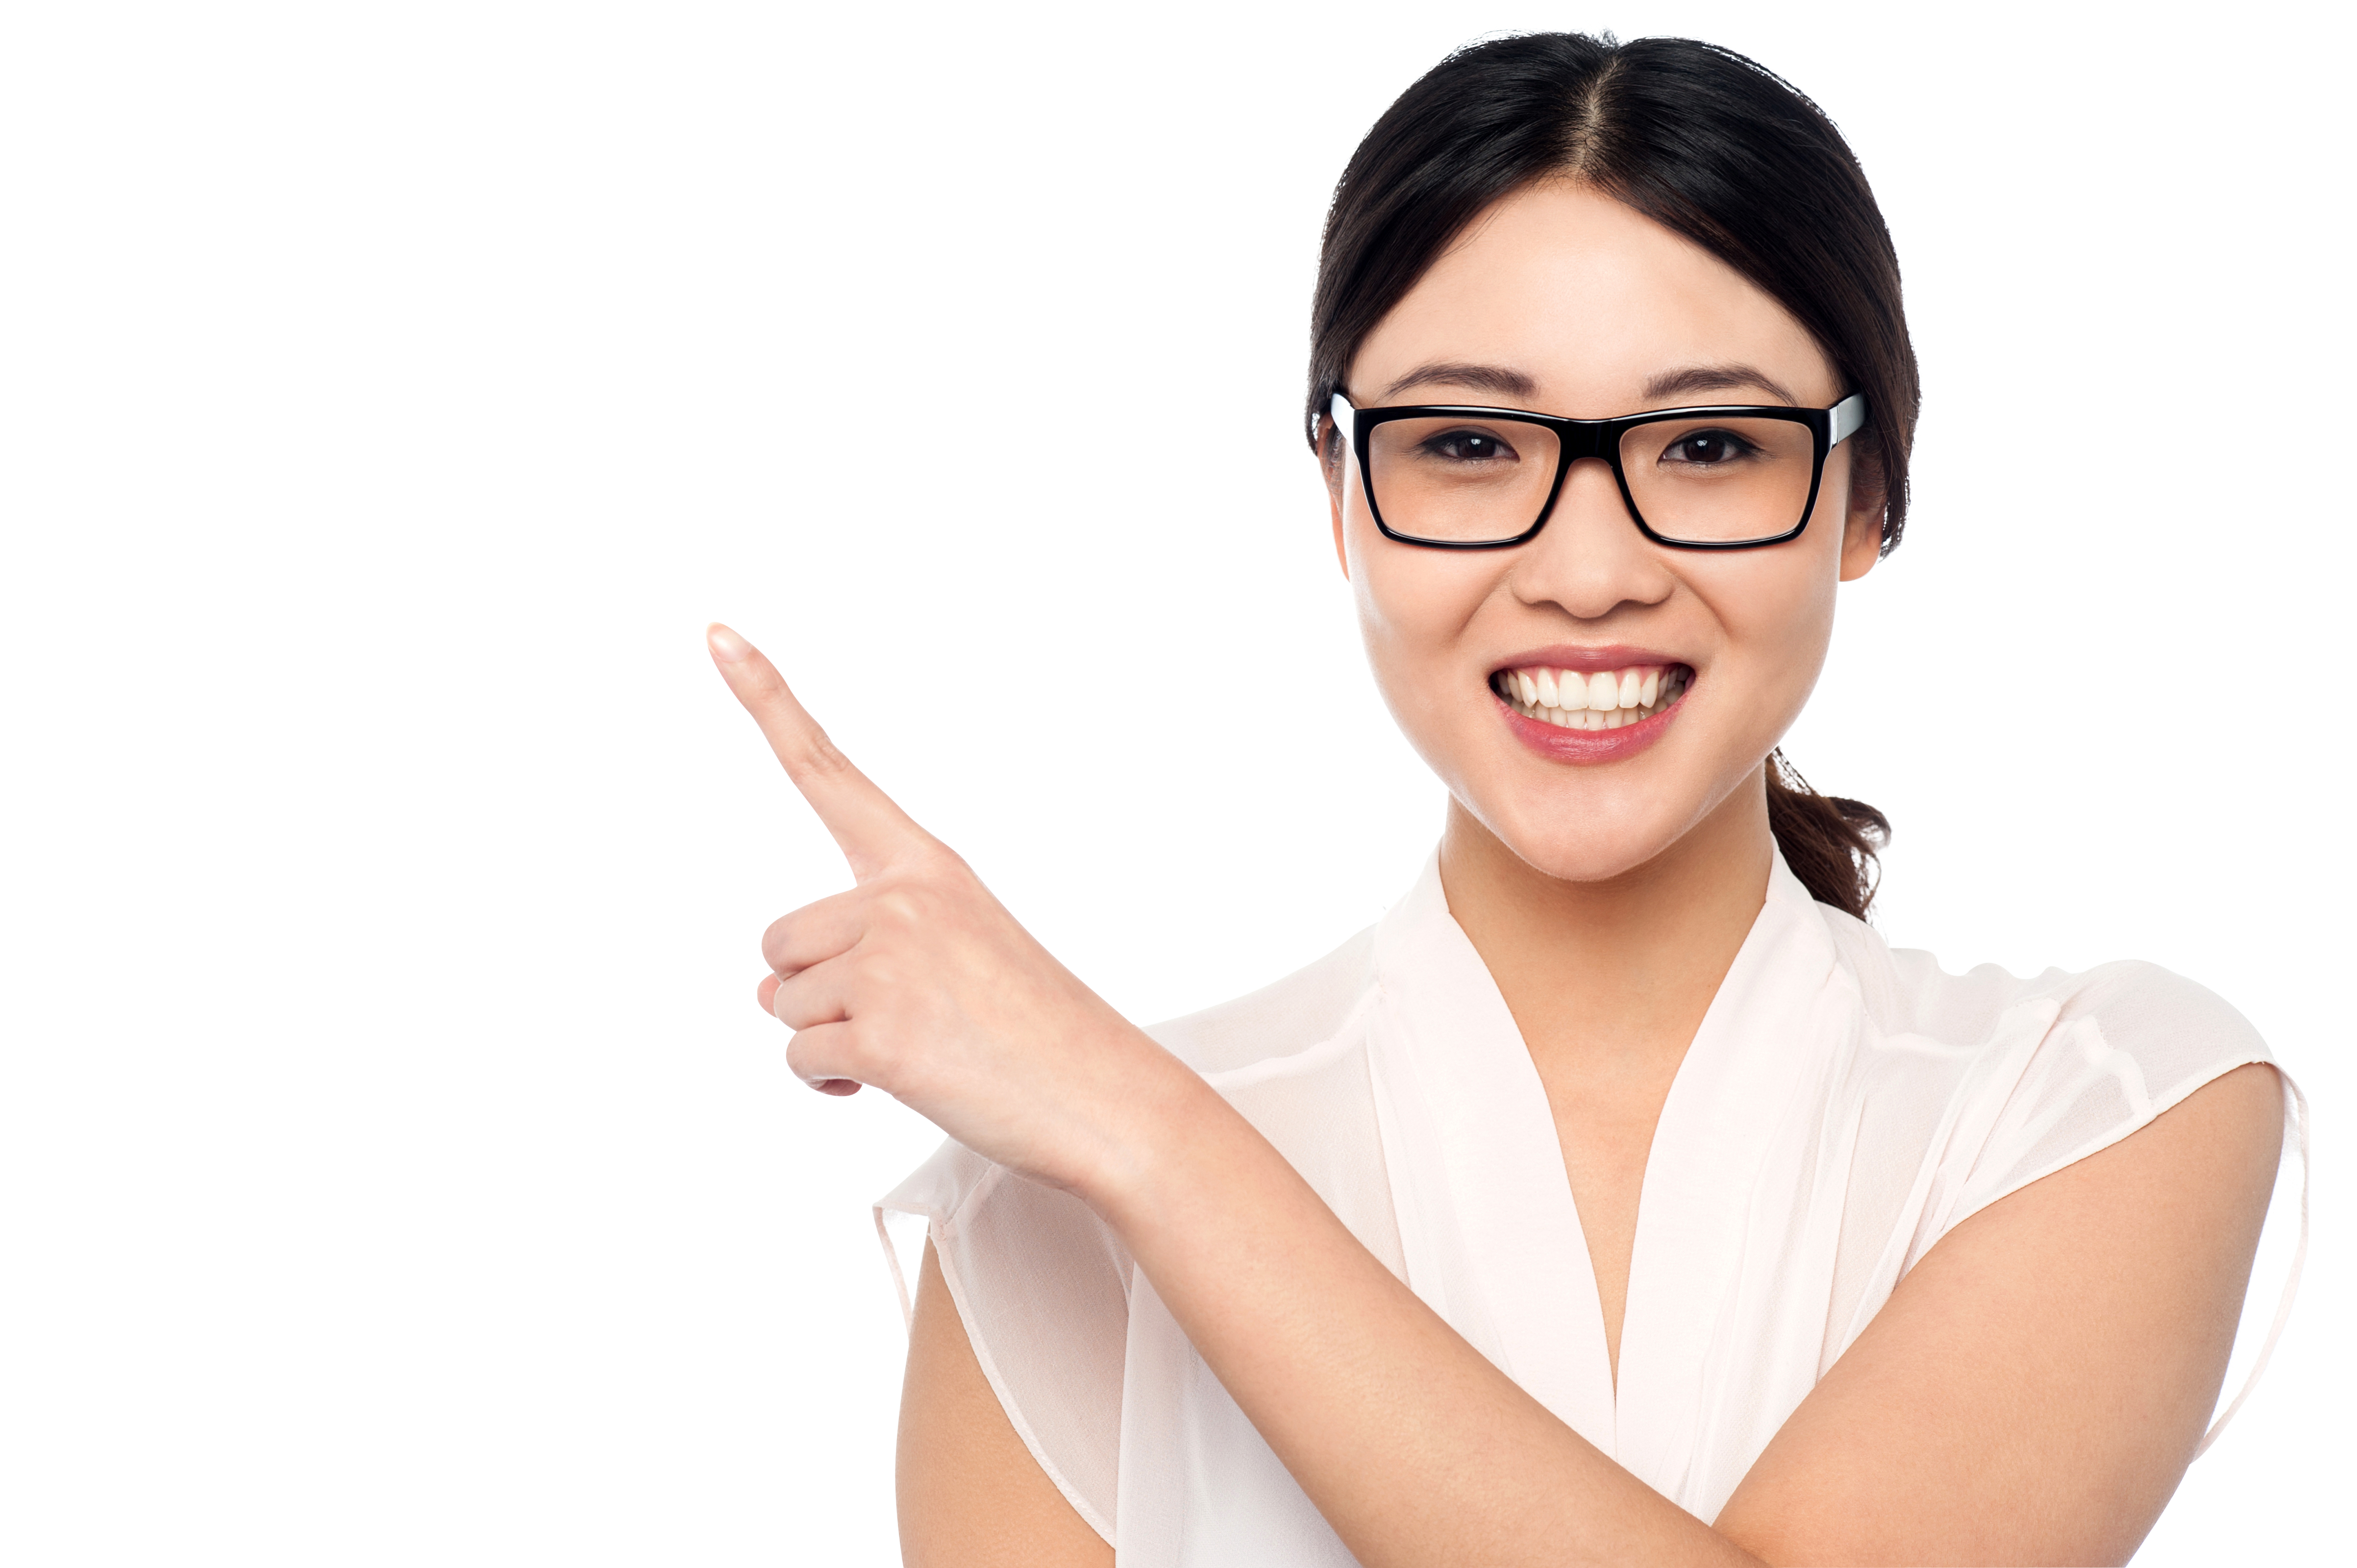 Woman pointing png. Girl left download free